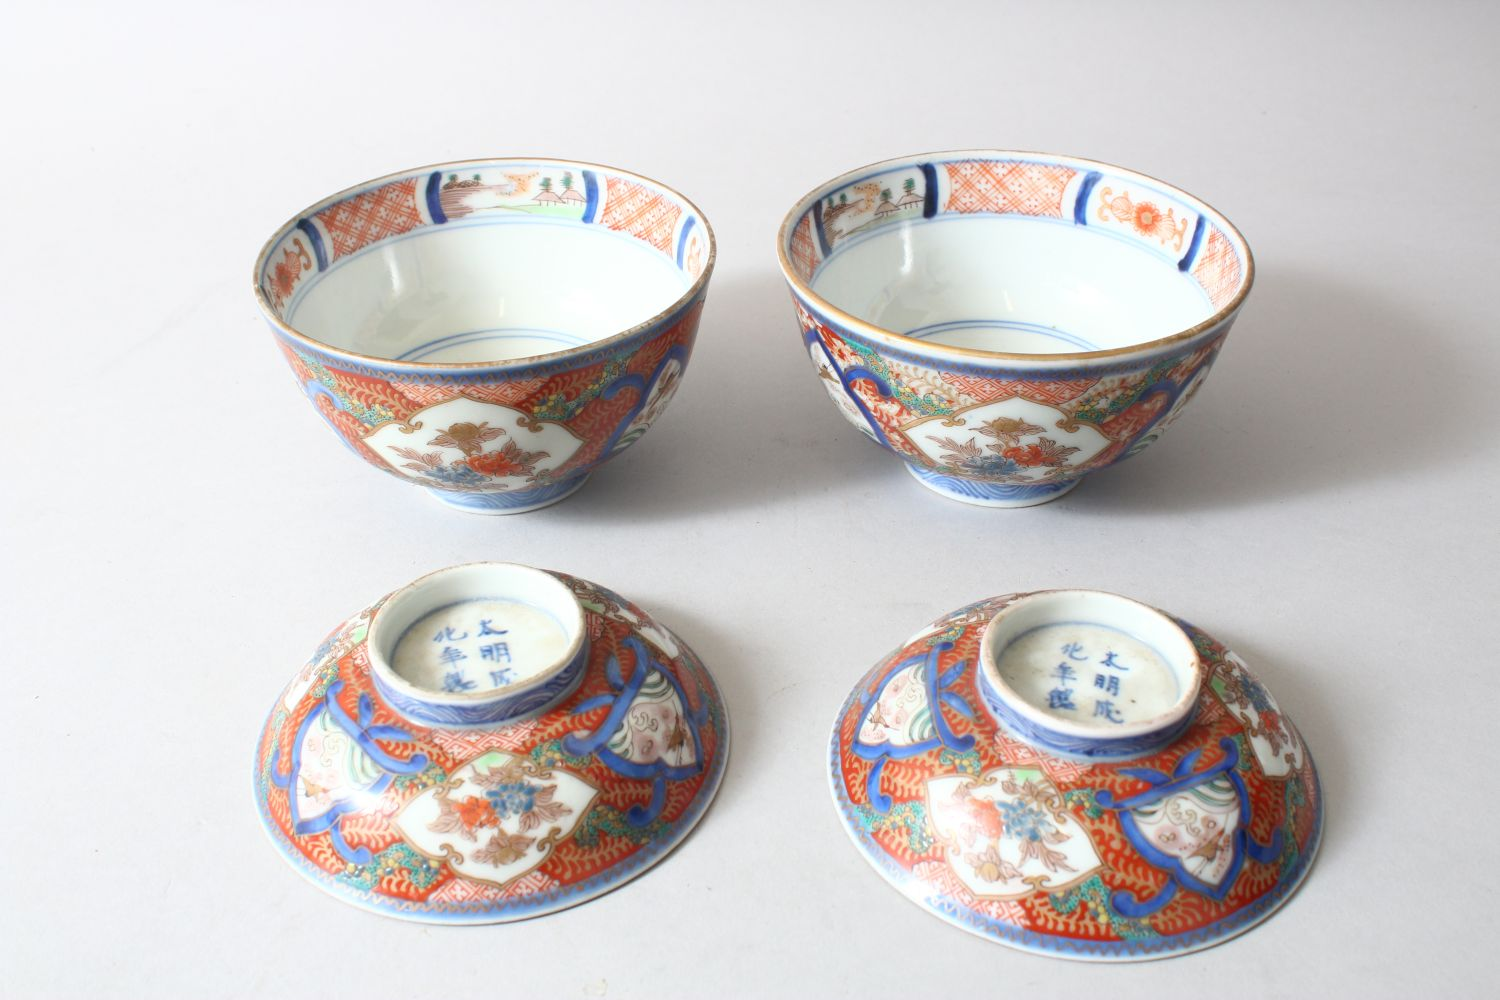 A PAIR OF JAPANESE MEIJI PERIOD IMARI PORCELAIN BOWLS AND COVERS, painted with alternating panels of